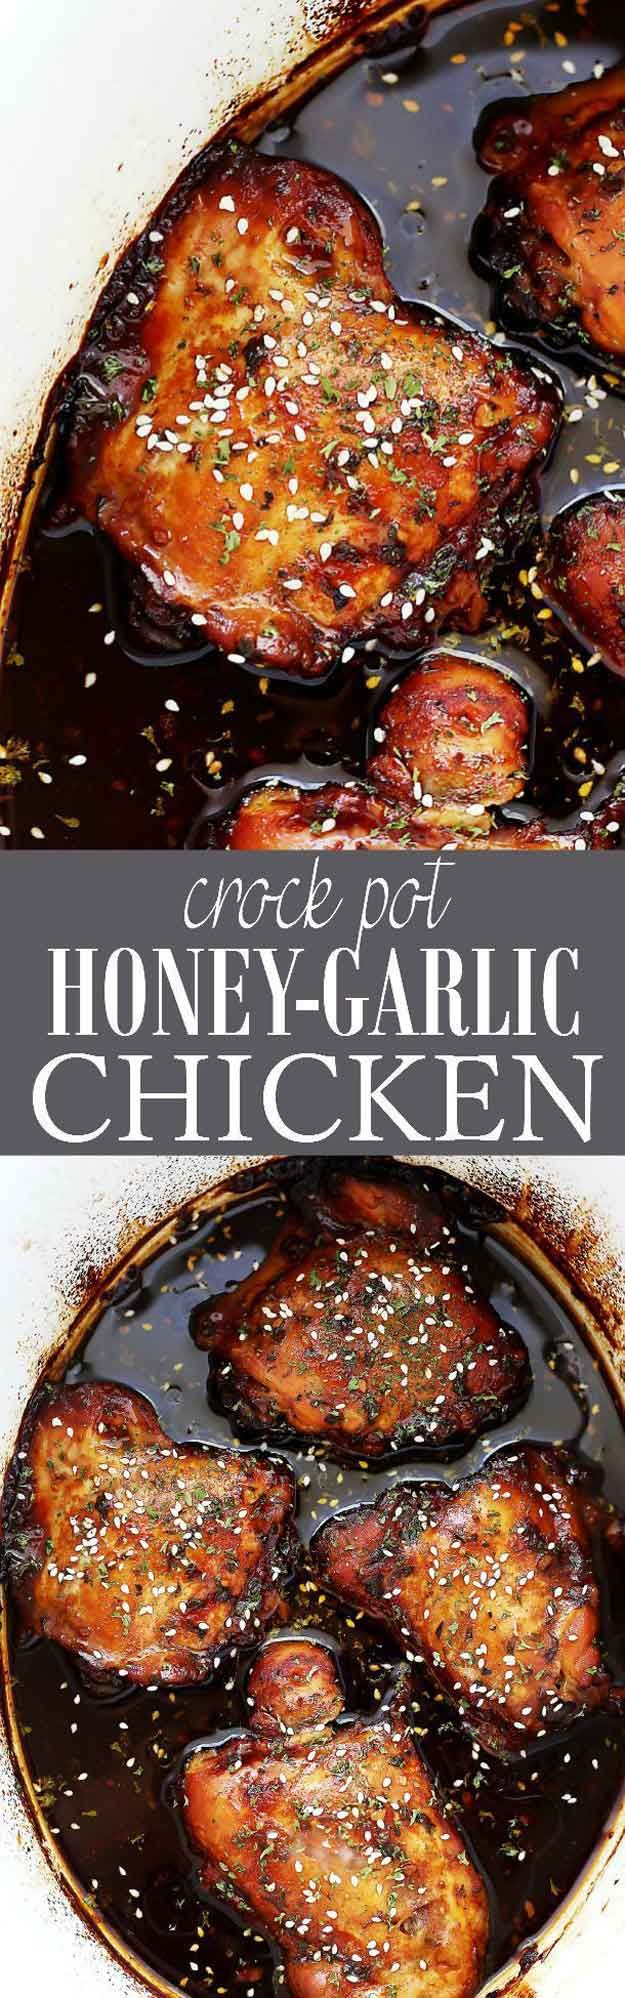 Crockpot Honey Garlic Chicken | 11 Succulent Chicken Crockpot Recipes To Make For Dinner